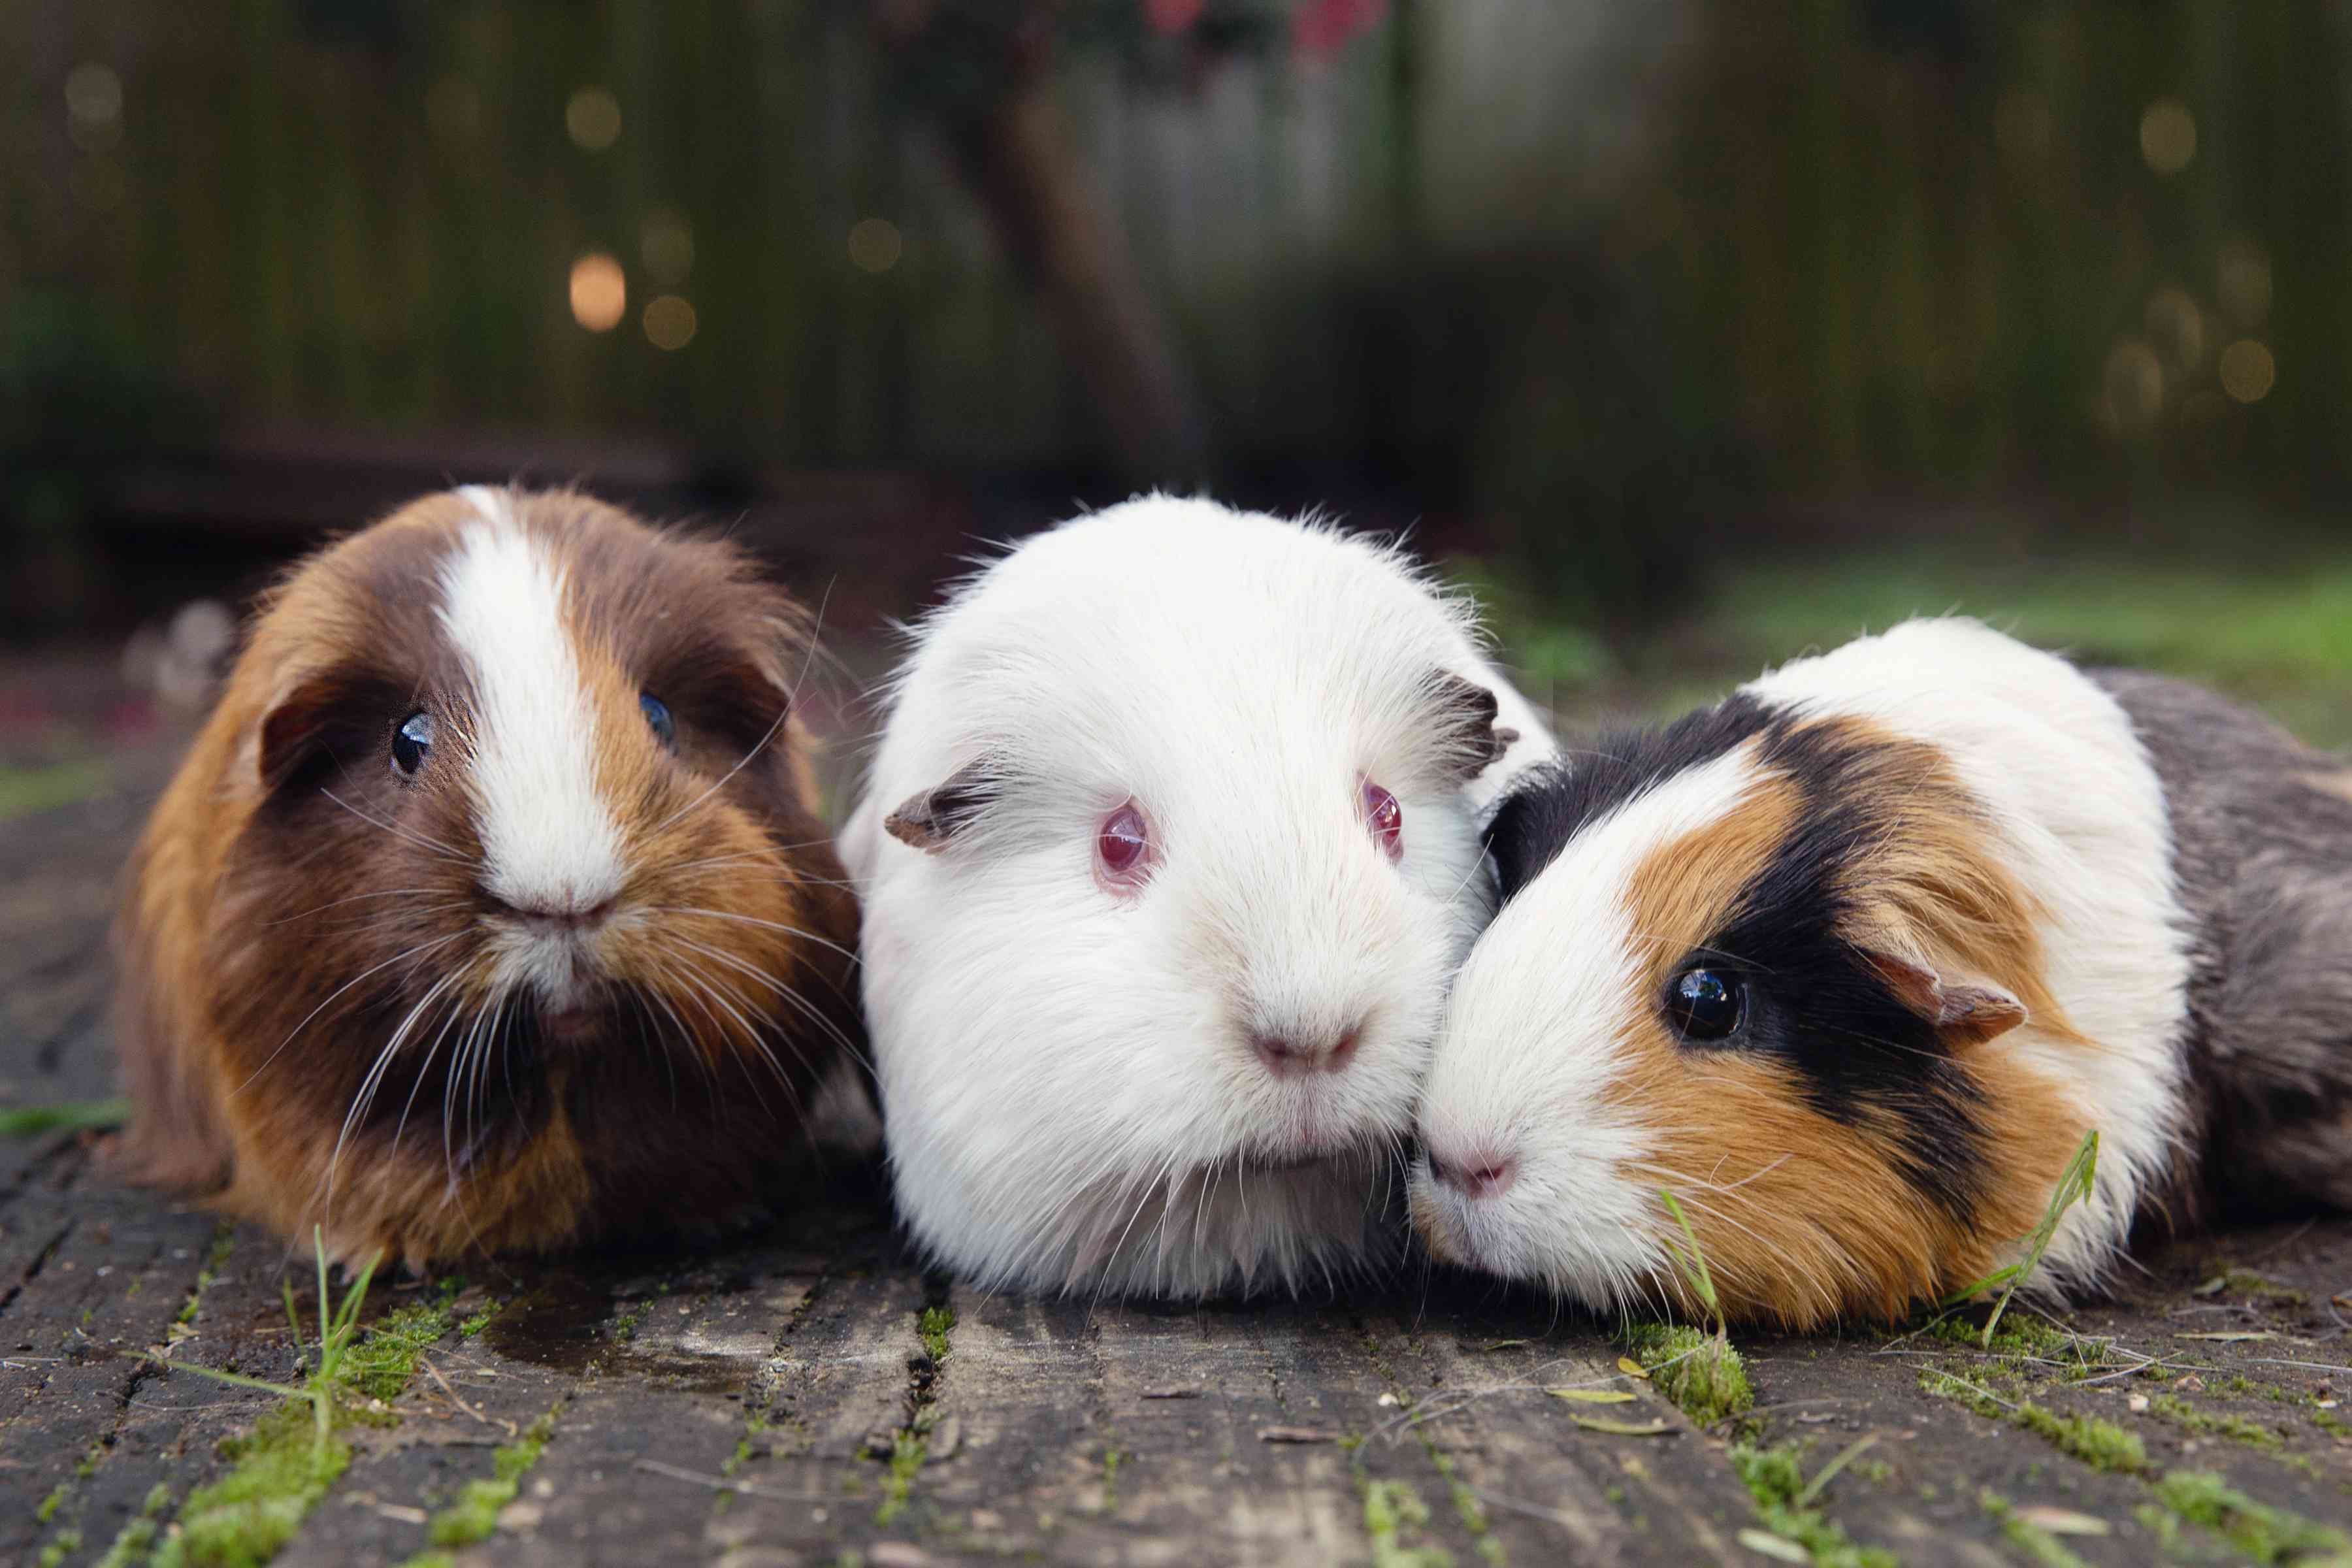 Three guinea pigs with brown and white hair, all white hair and a mix of brown, black and white hair